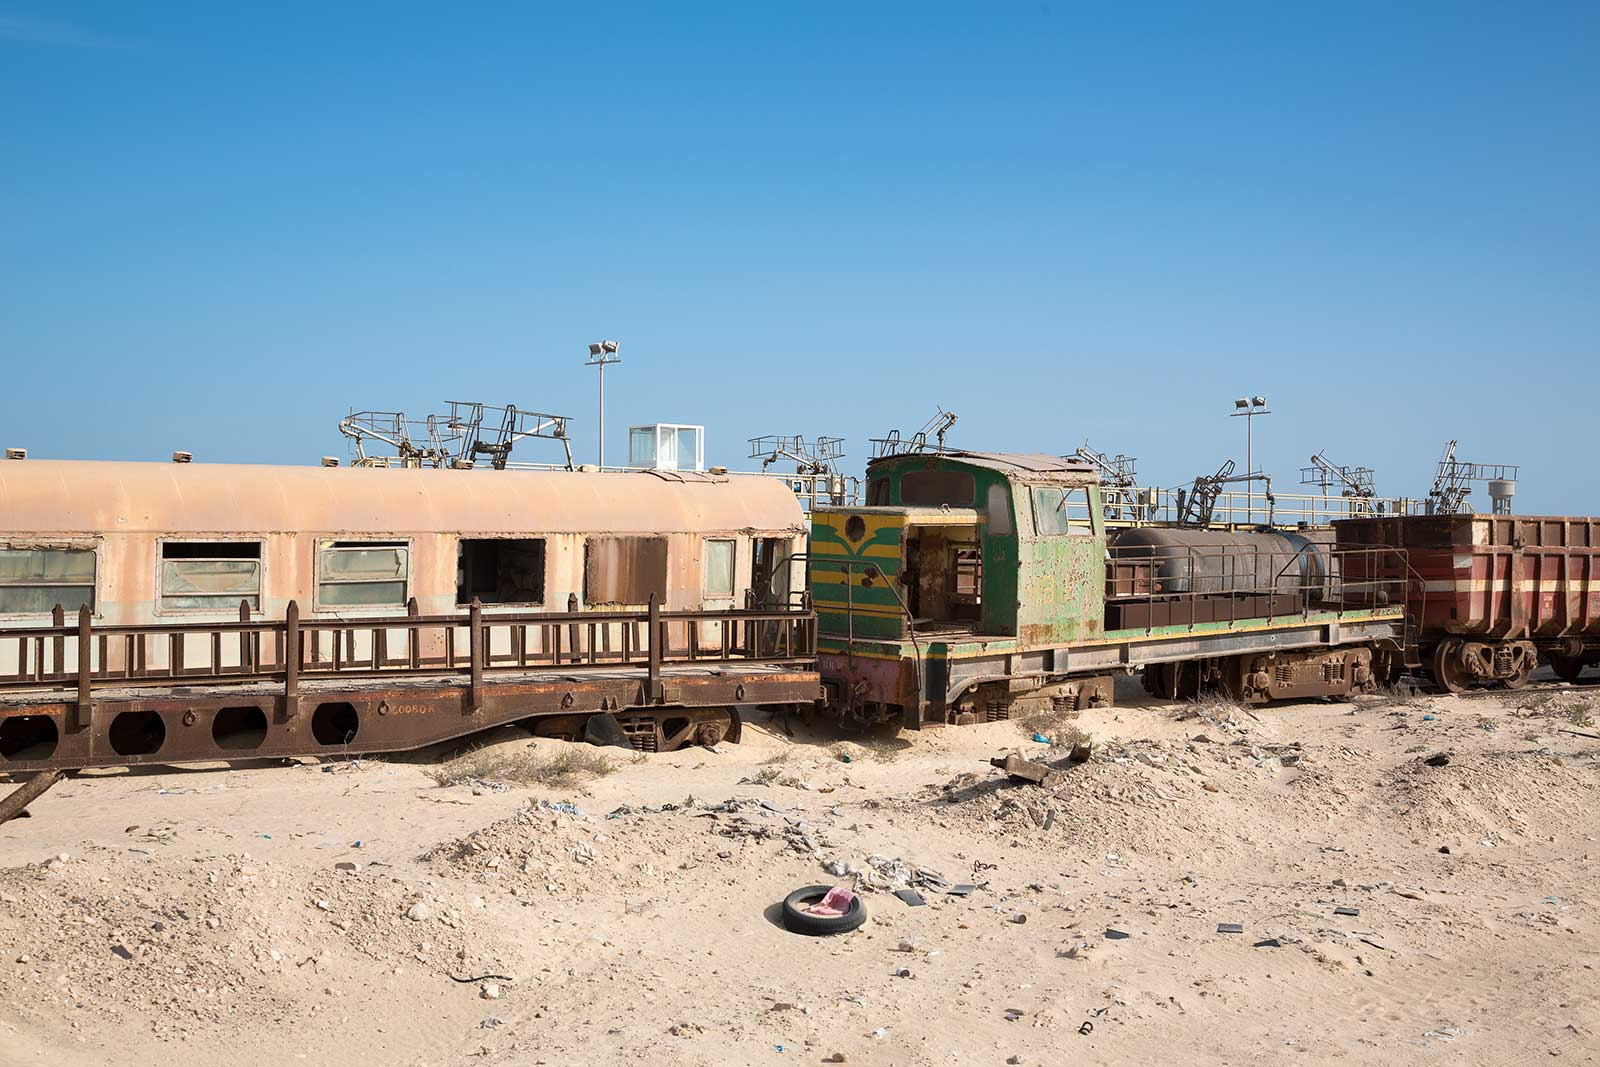 Wrecks are a normal sight when riding through Mauritania on the Iron Ore Train.